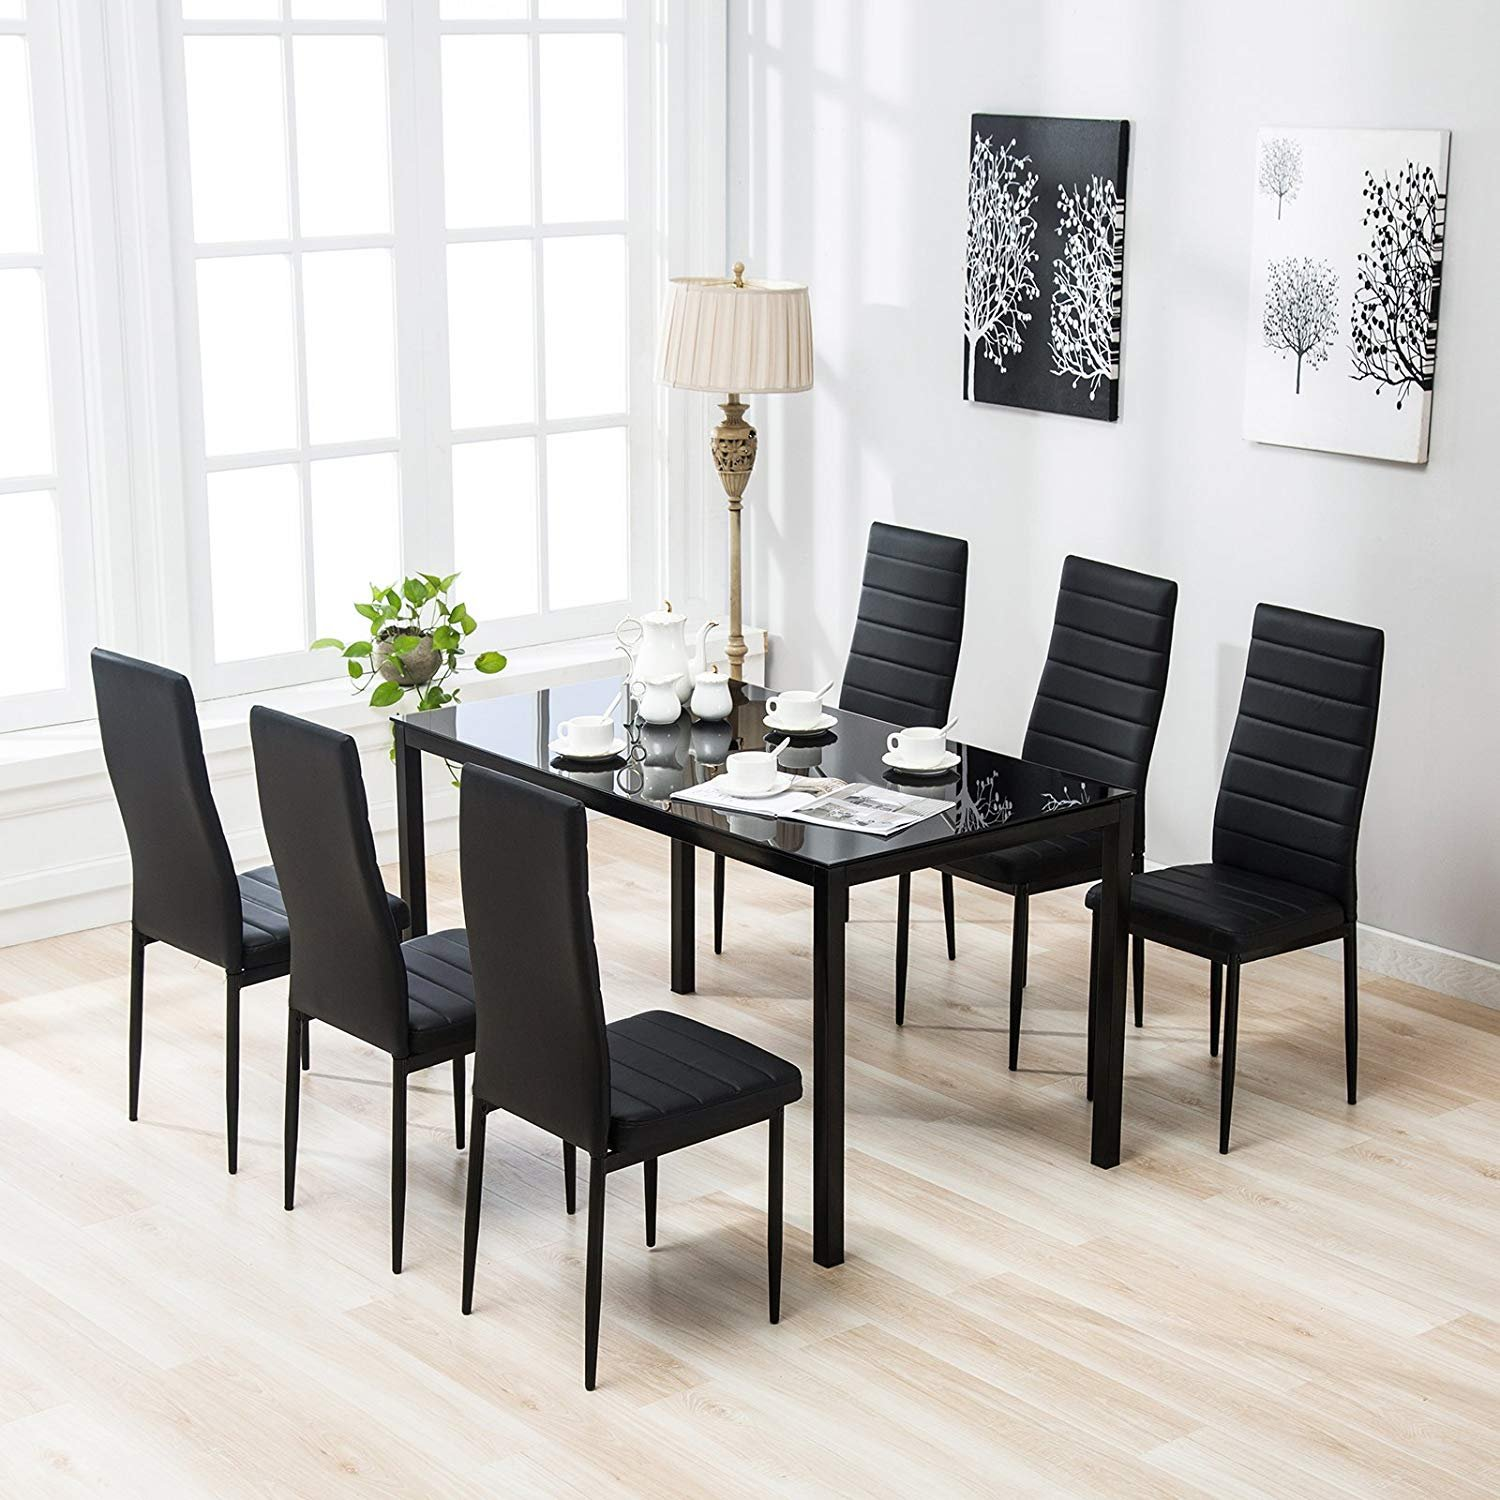 Mecor 7 Piece Kitchen Dining Set, Glass Top Table with 6 Leather Chairs Breakfast Furniture,Black by Mecor (Image #1)